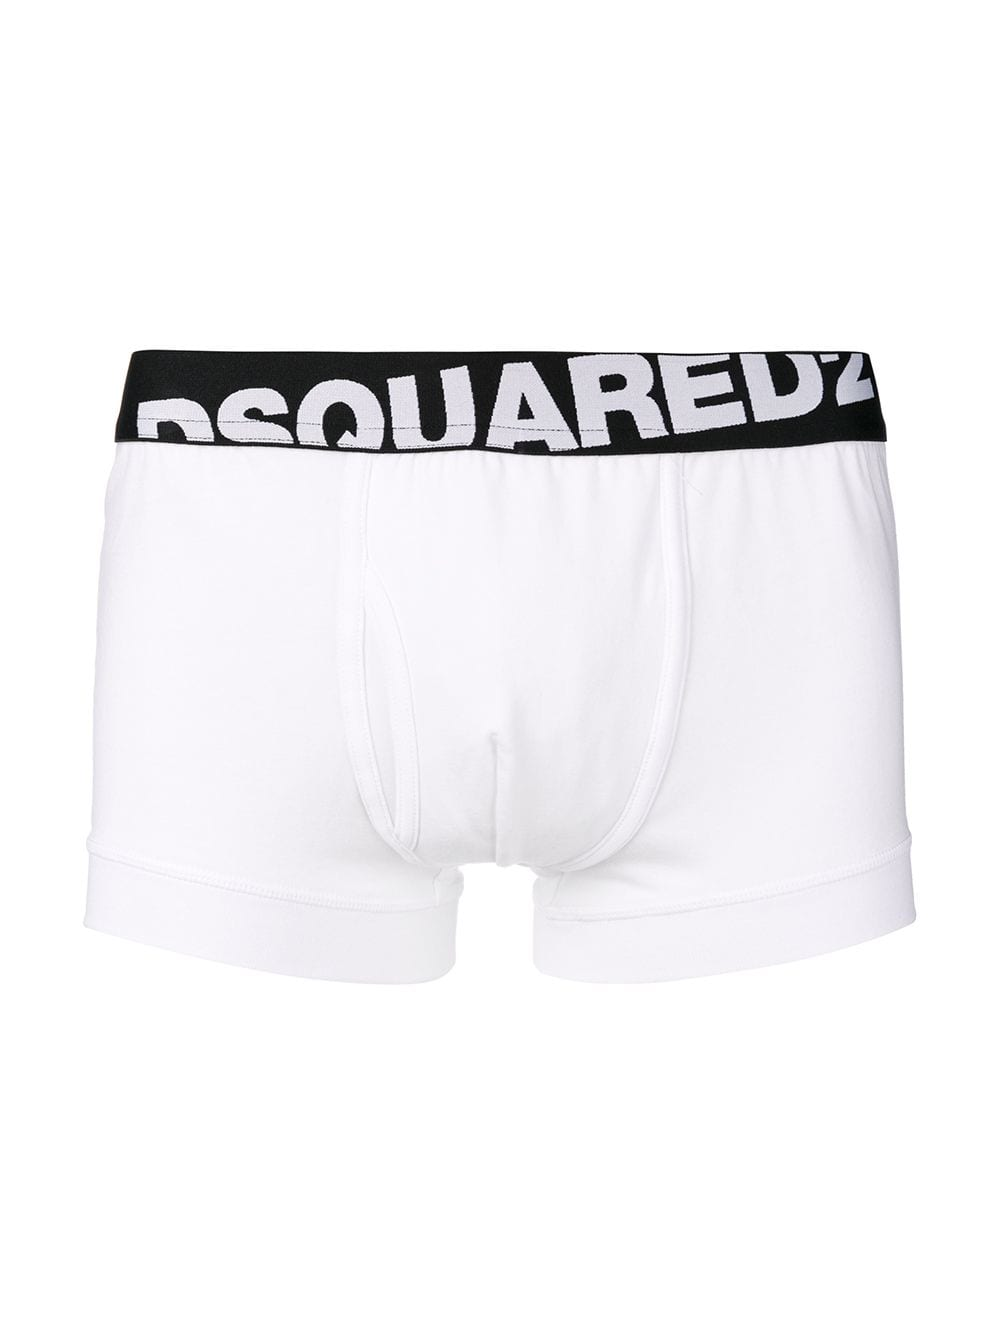 Dsquared2 White Trunk Twin Packs | Dsquared2